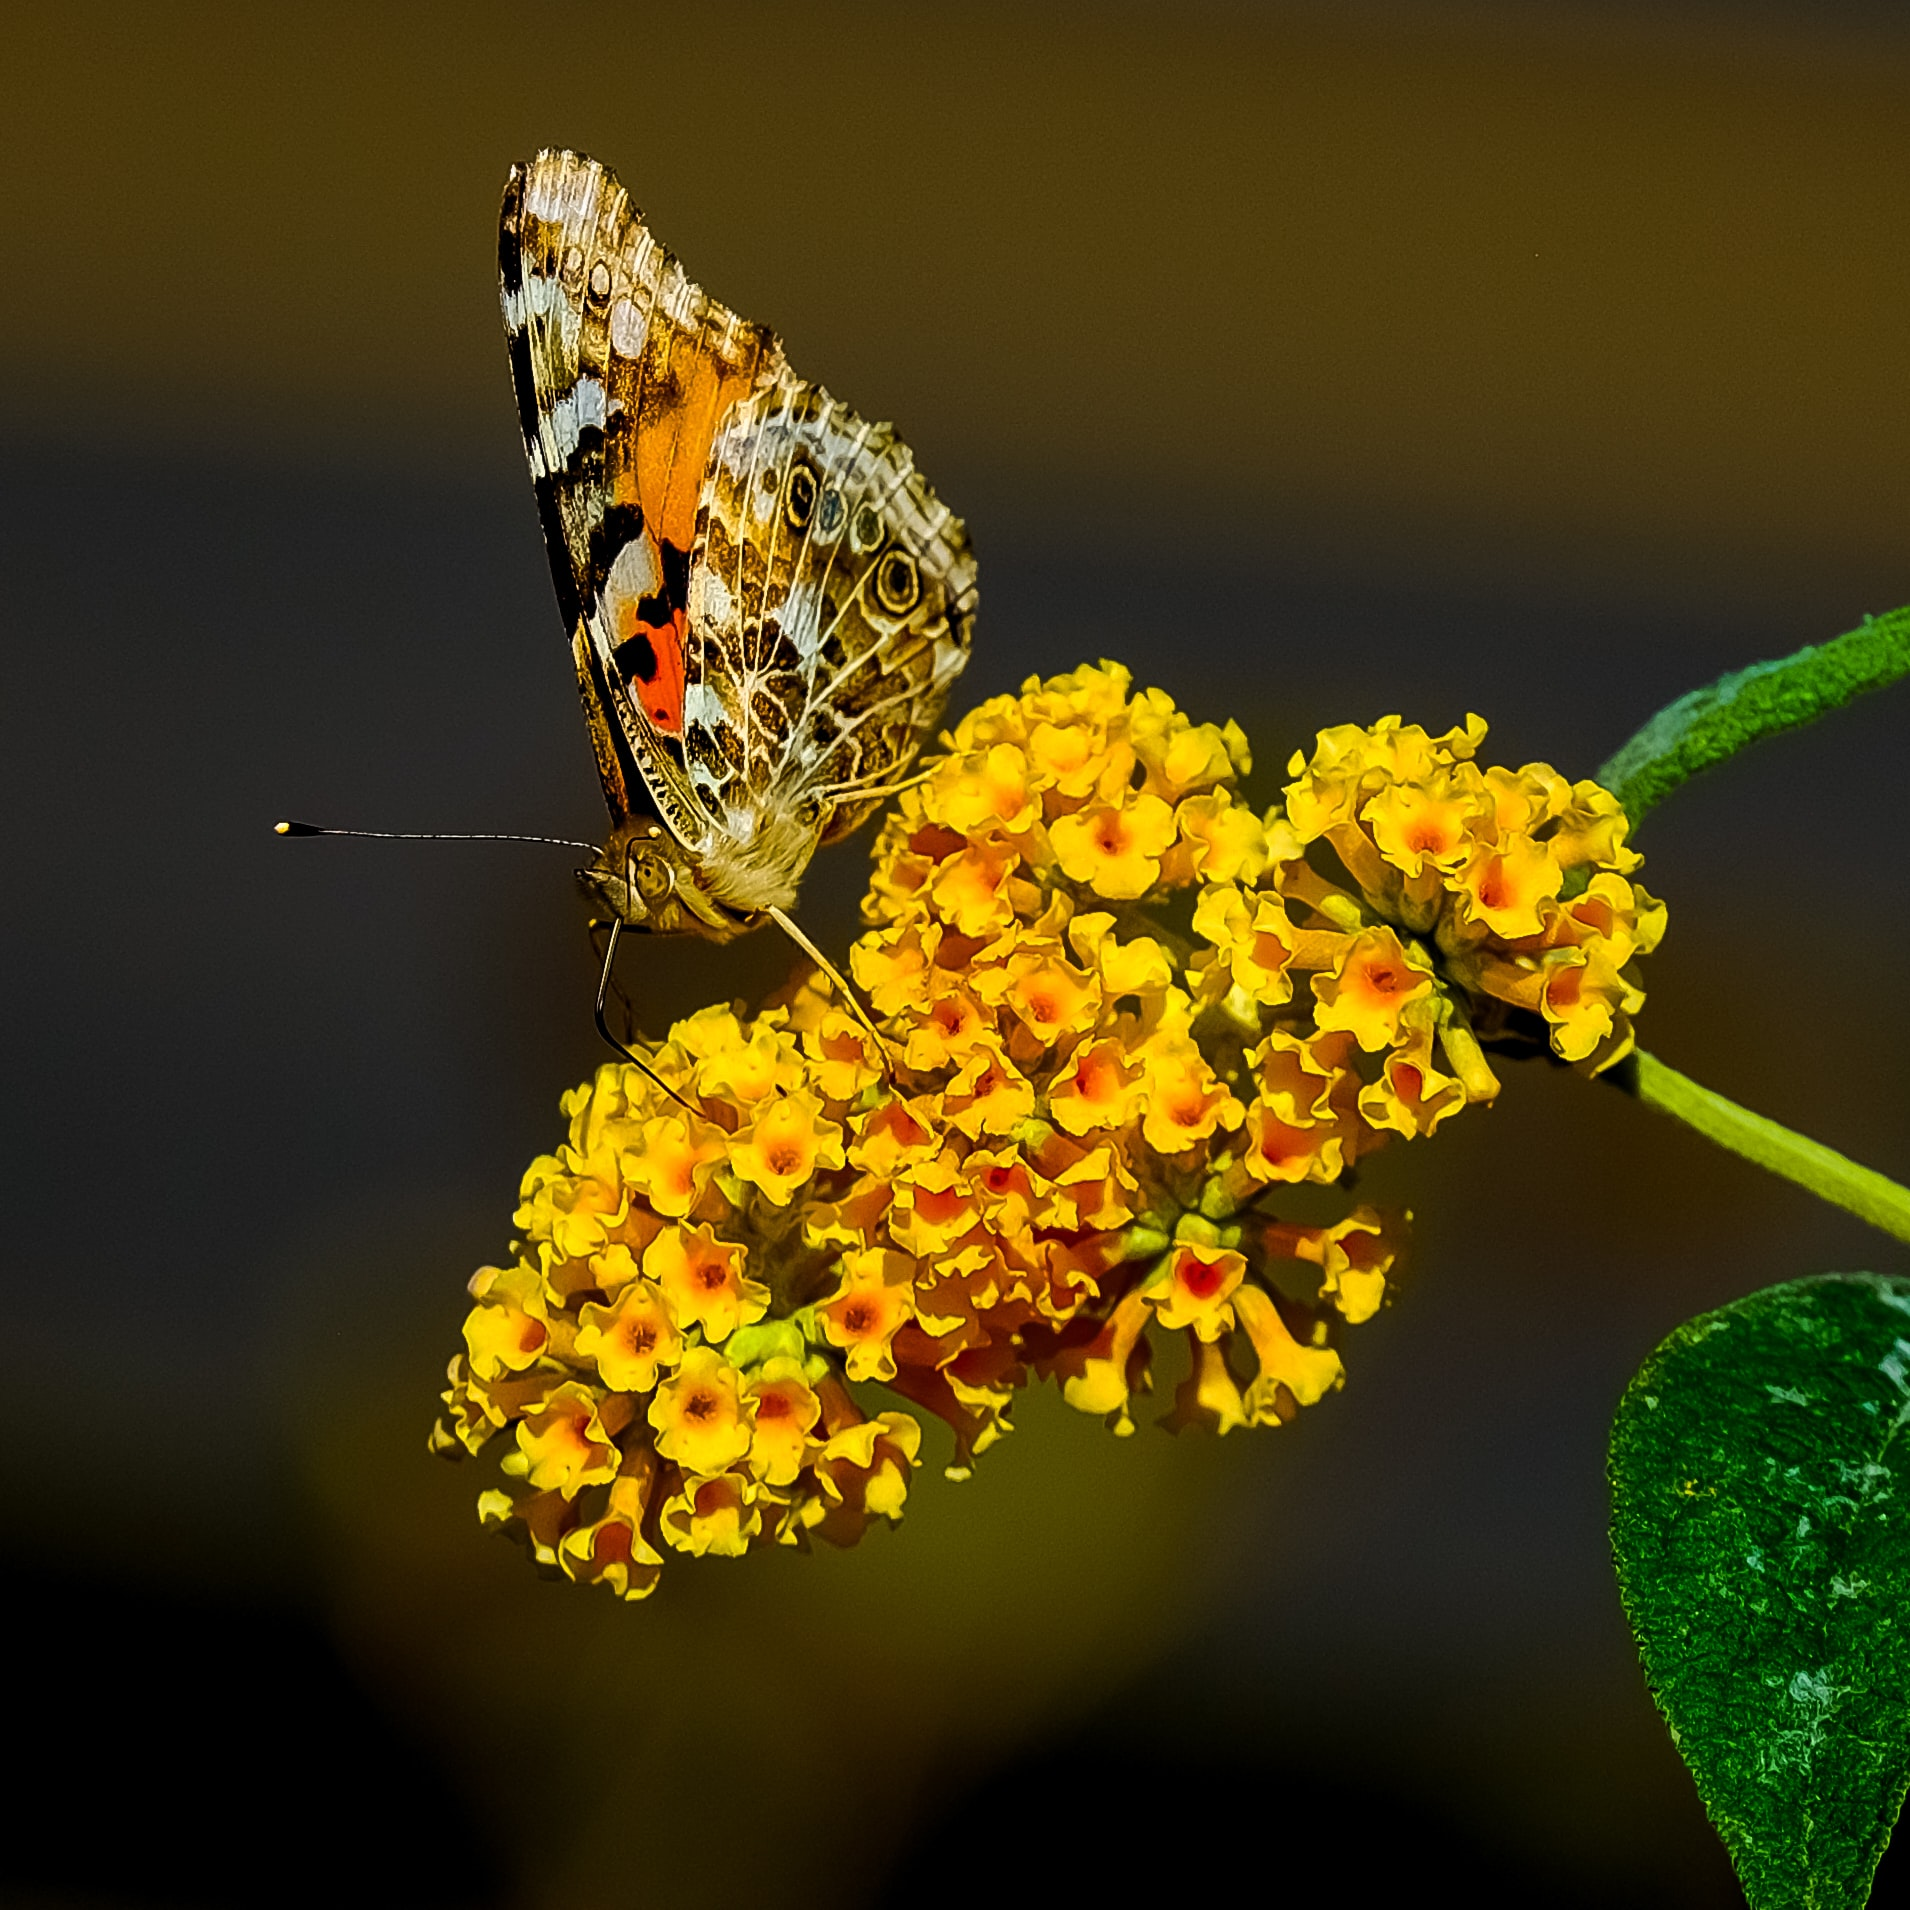 brown and orange butterfly perched on yellow lantana flowers